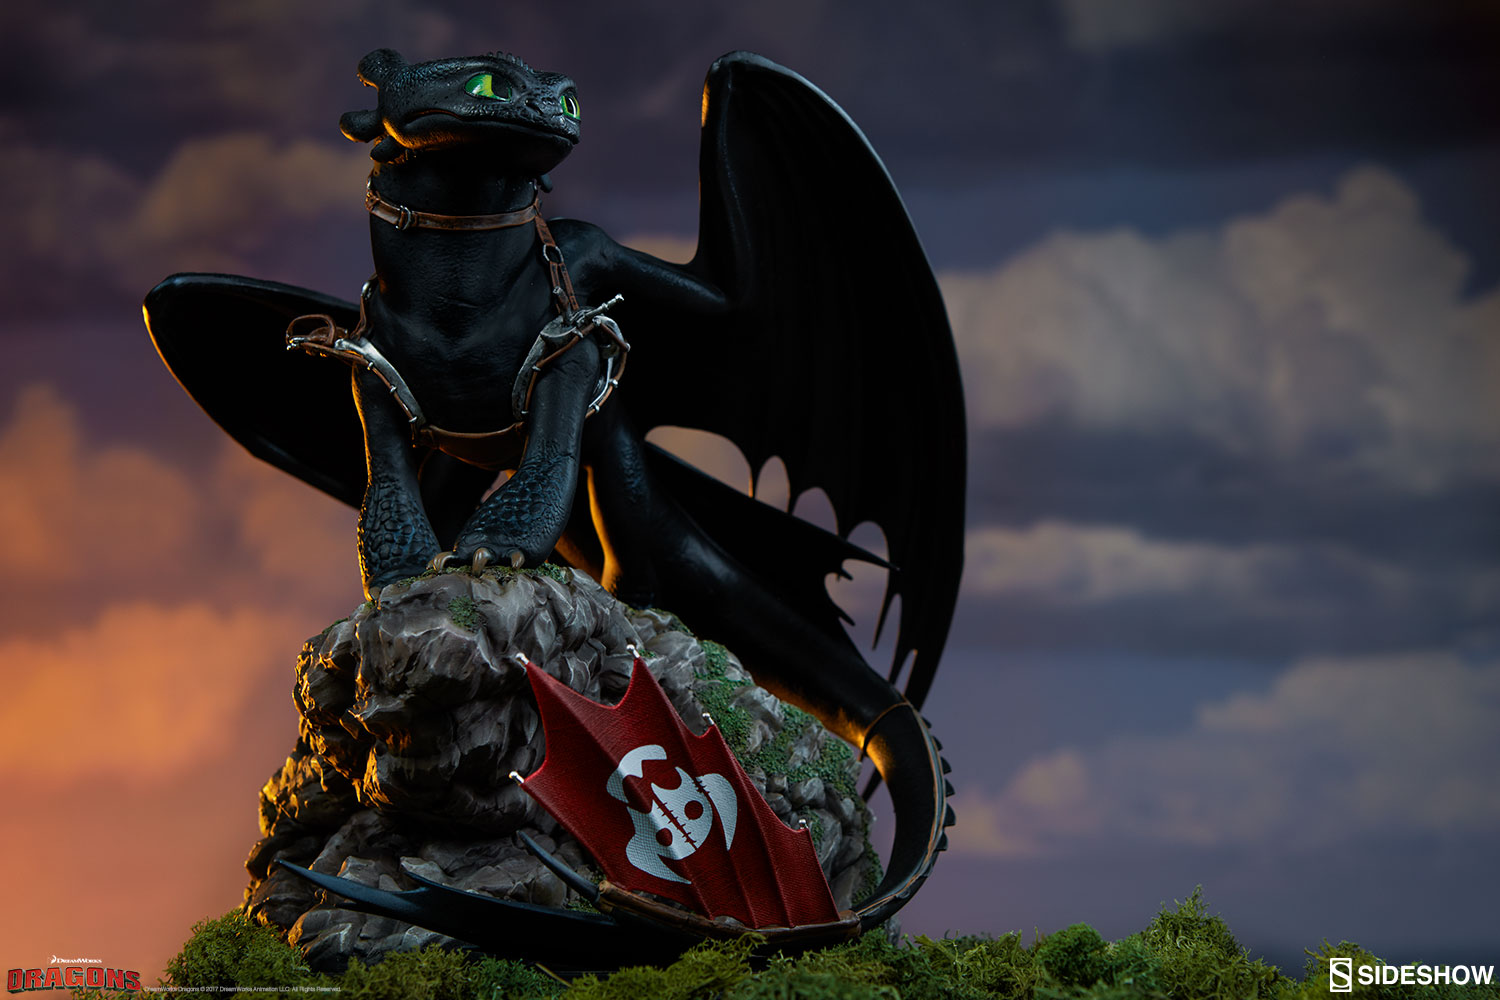 How To Train Your Dragon Toothless Statue Sideshow Collectibles